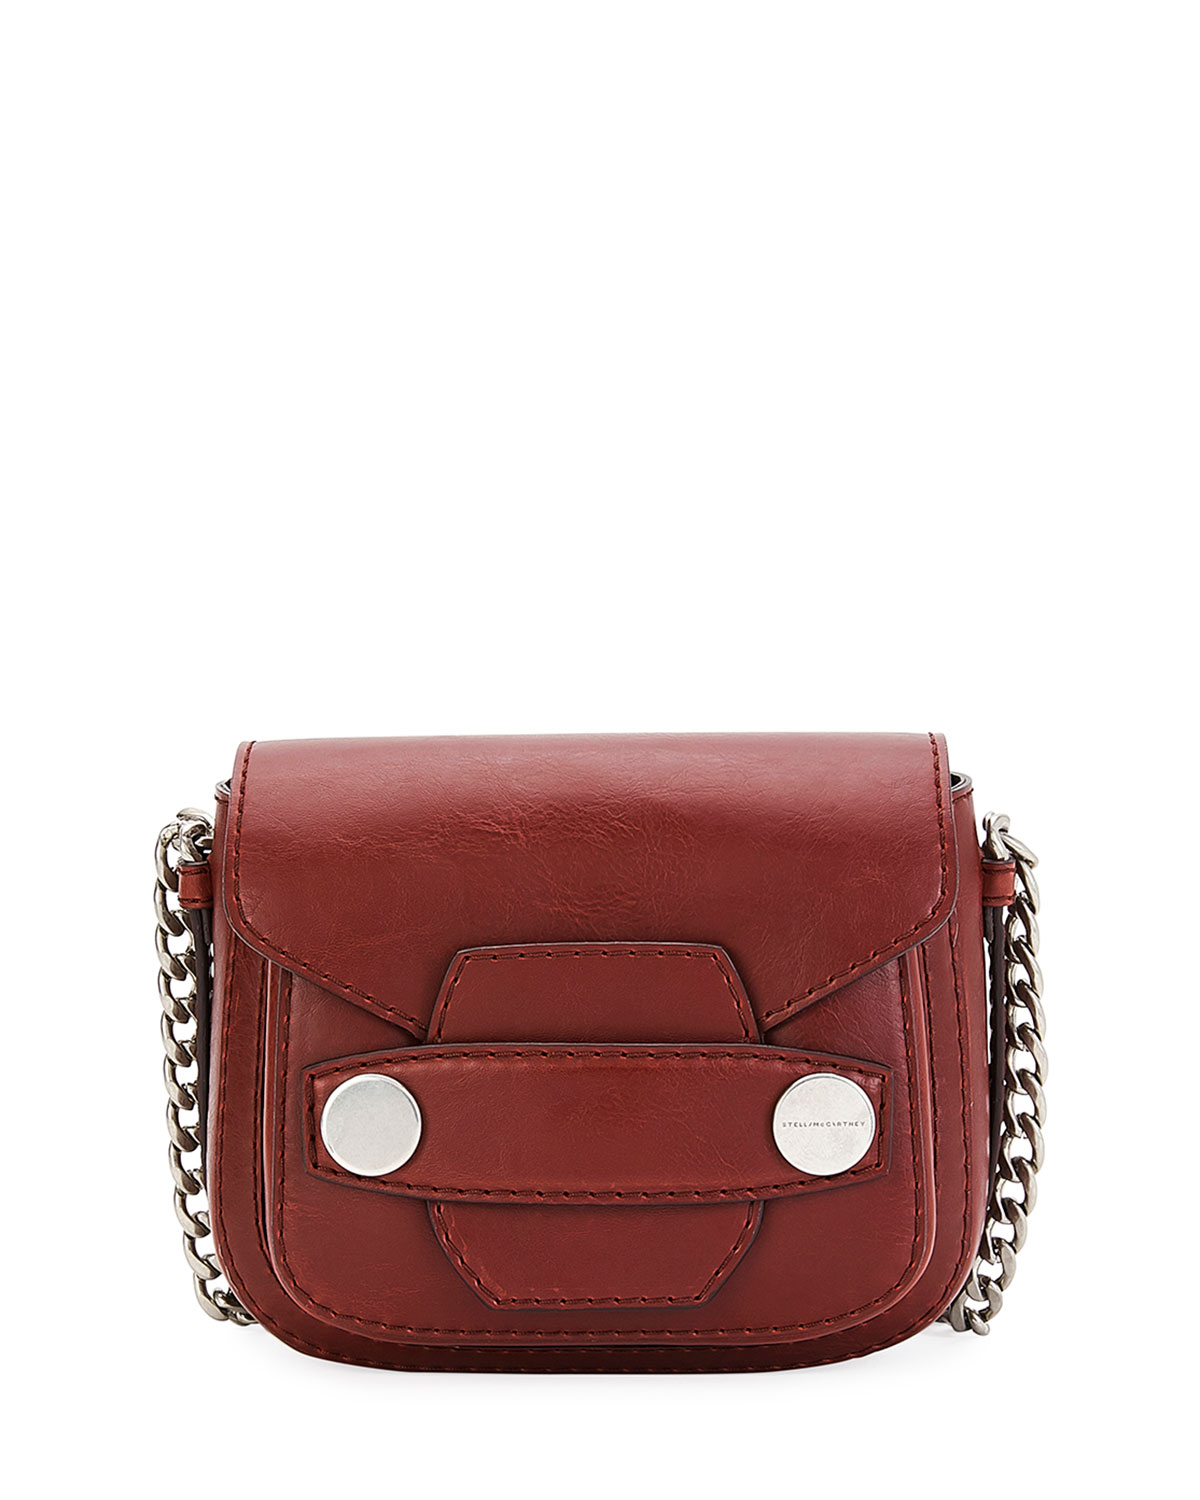 Stella McCartney Popper Medium Faux-Leather Crossbody Bag, Brick ... 116ca8cff0